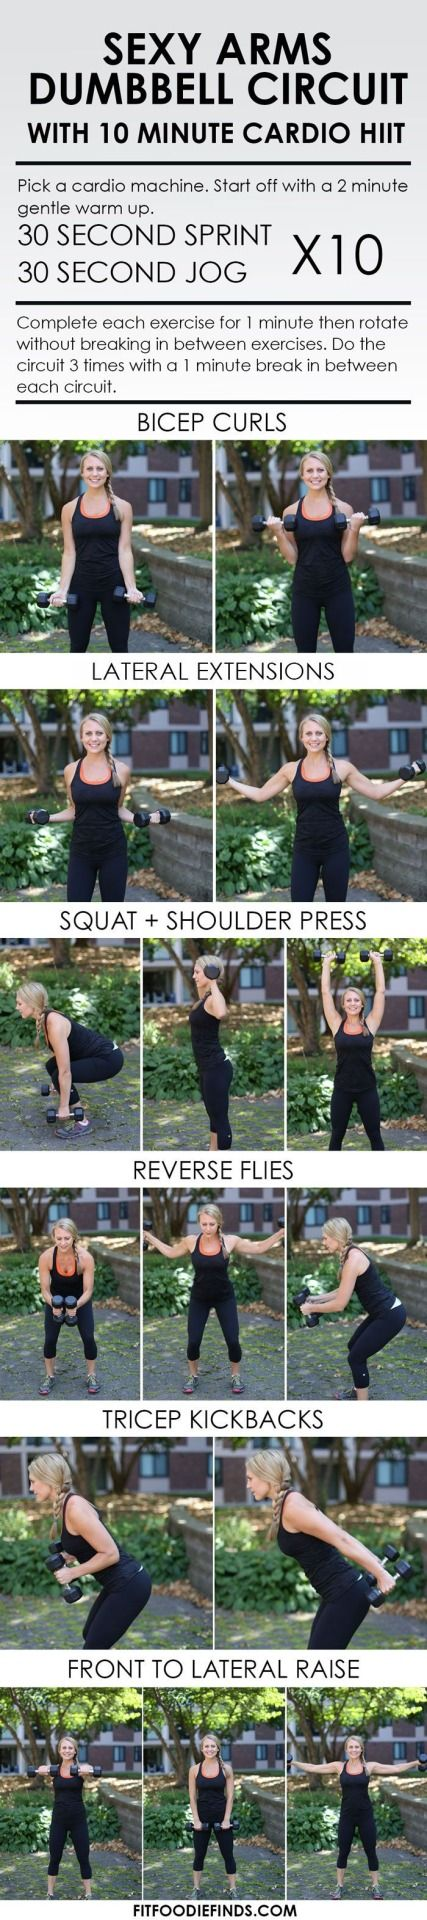 Resistance training combined with aerobic exercise provides additional benefits for diabetes ➡ http://www.ahealthblog.com/aerobic-exercise-and-resistance-training-combination-for-diabetes.html